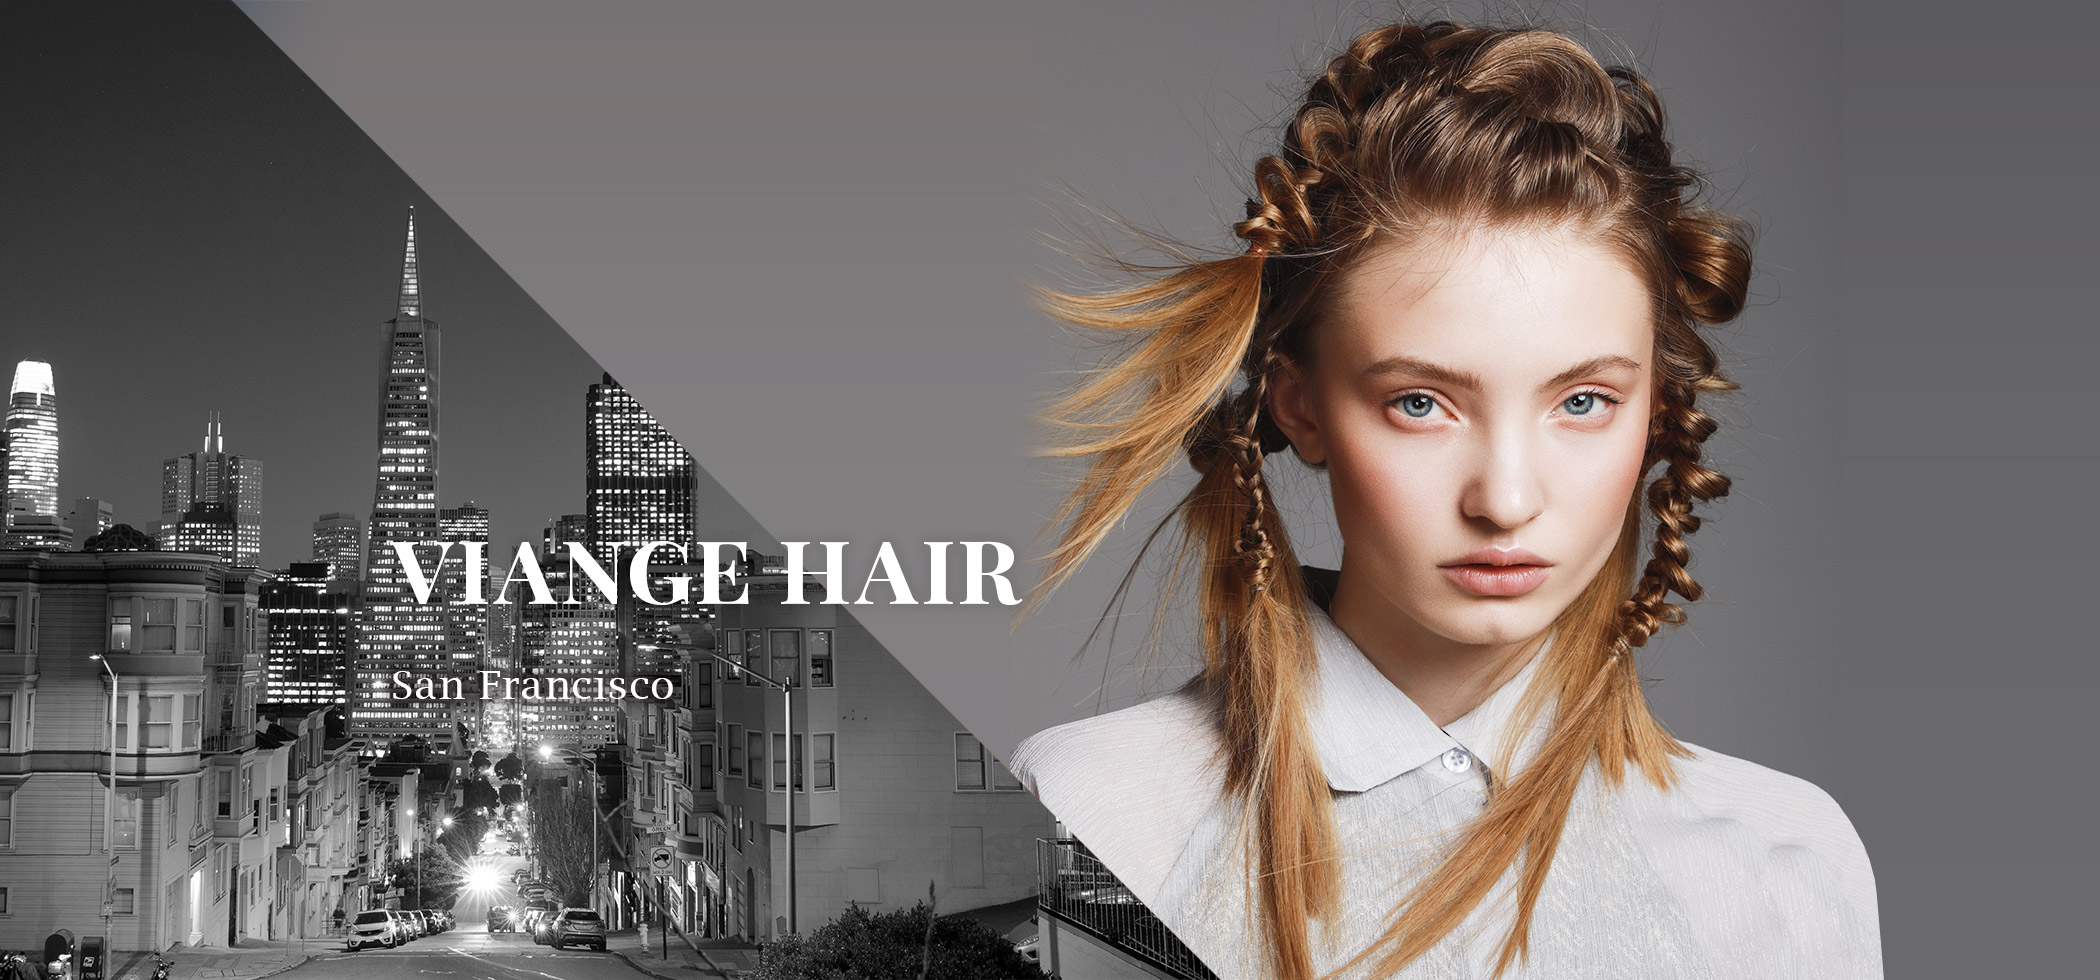 Viange Hair San Francisco